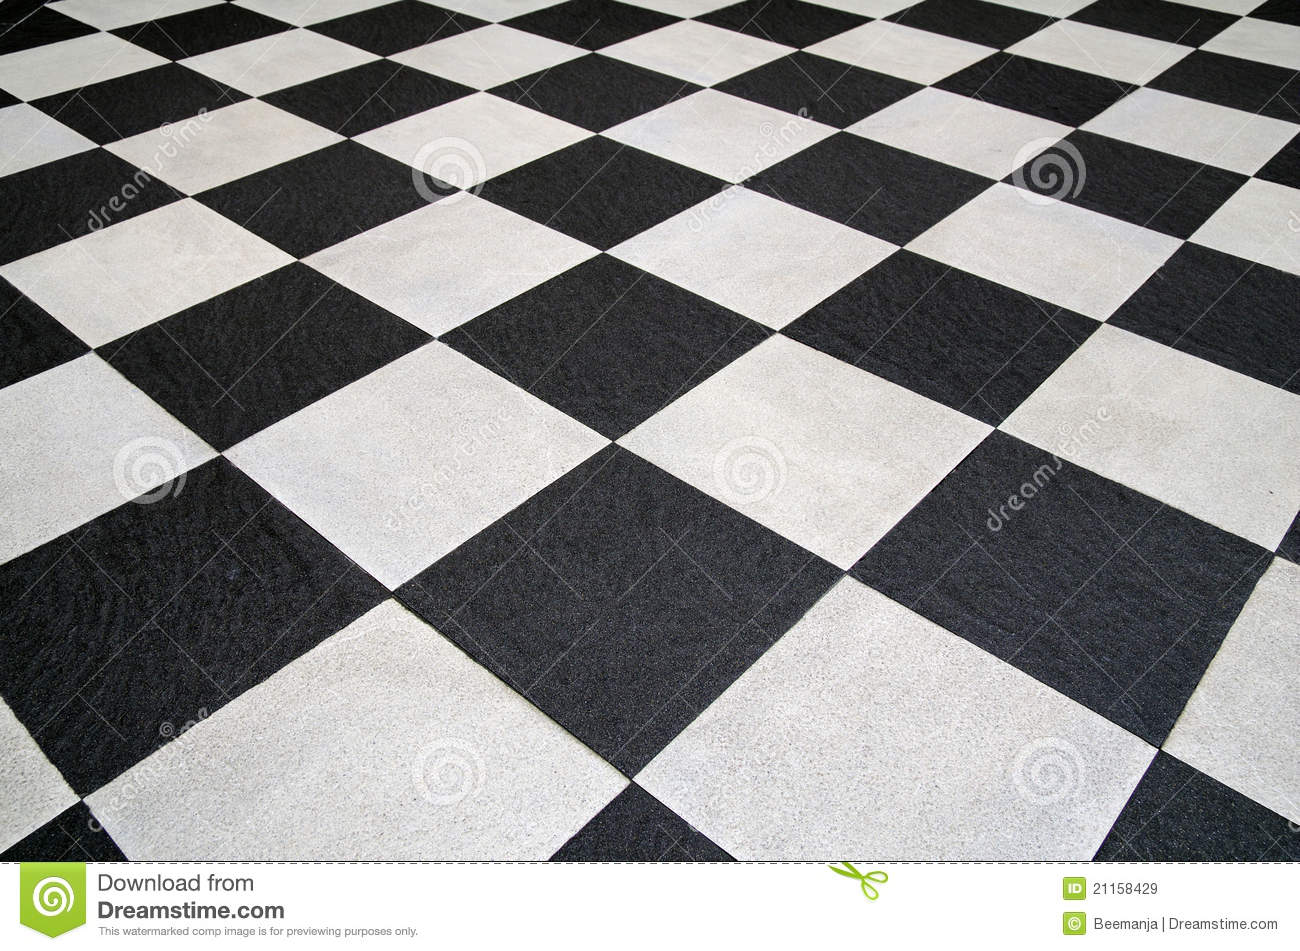 black and white floor tile. Square Black And White Tiles Floor Royalty Free Stock Images Vintage Black And White Floor Image  Of Modern